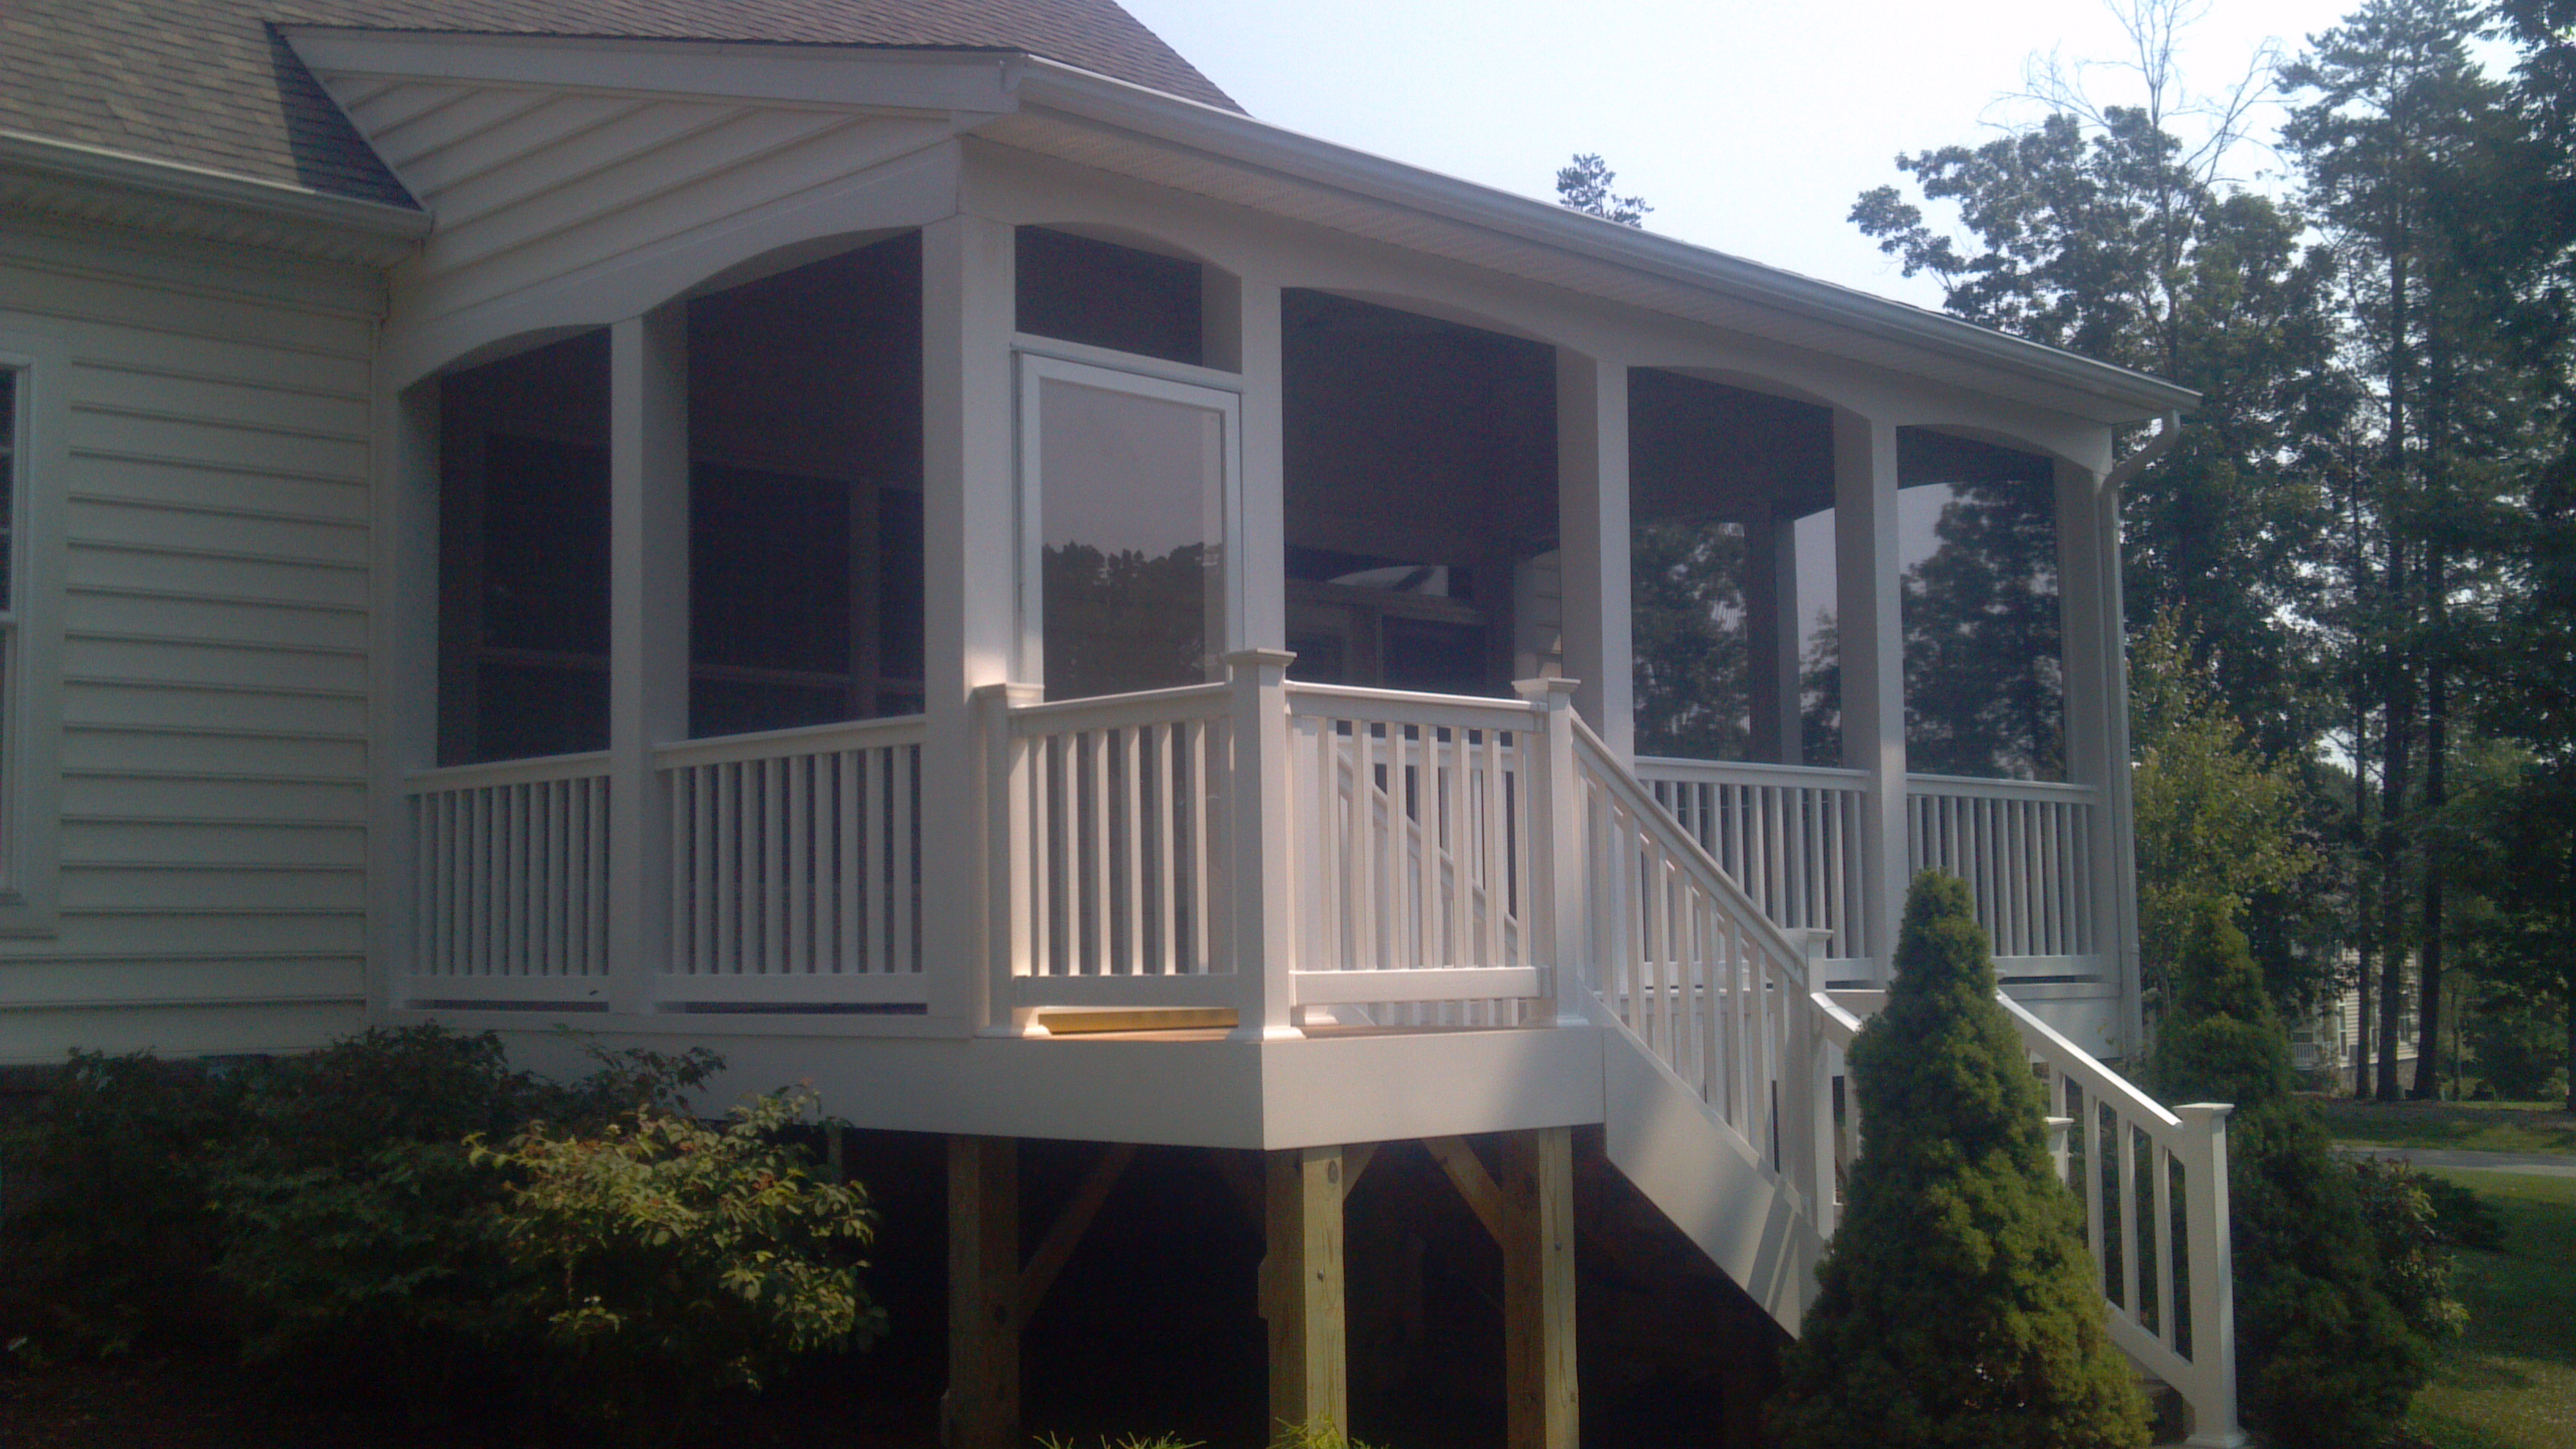 farragut to a by the wp in tn screen built category porch porches deck decks how image double builder